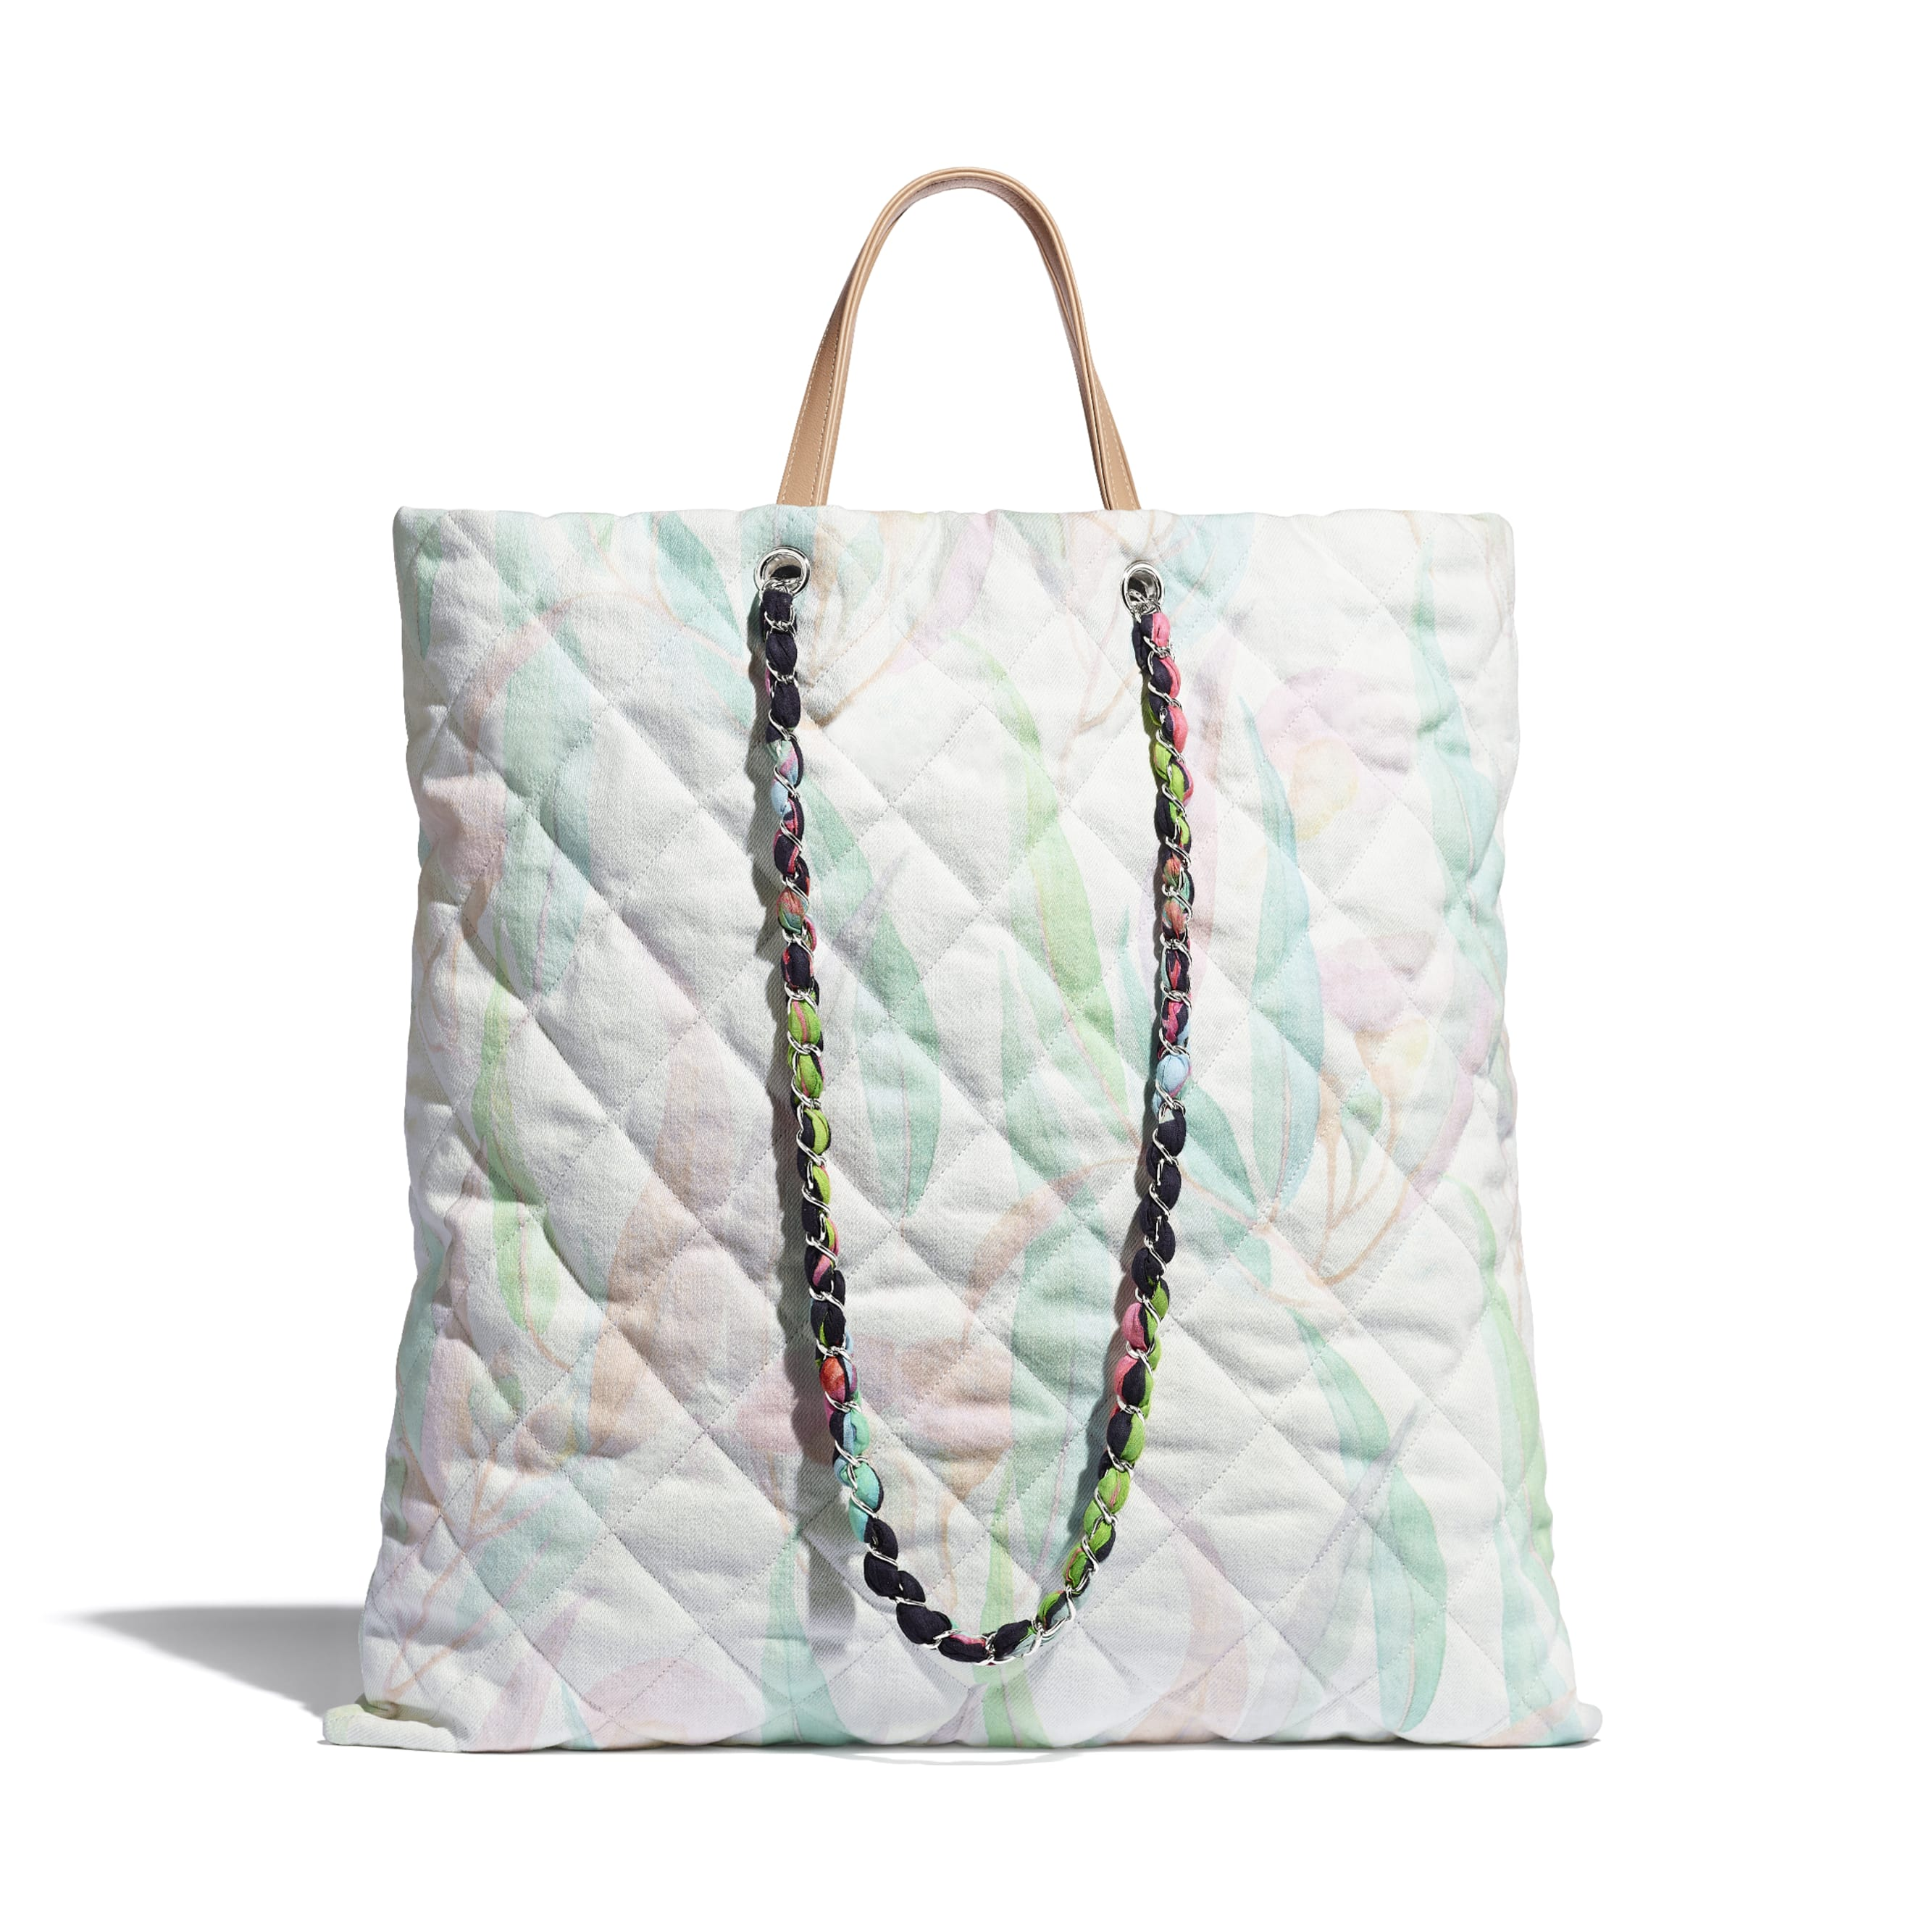 Shopping Bag - Multicolor - Denim & Silver-Tone Metal - CHANEL - Alternative view - see standard sized version